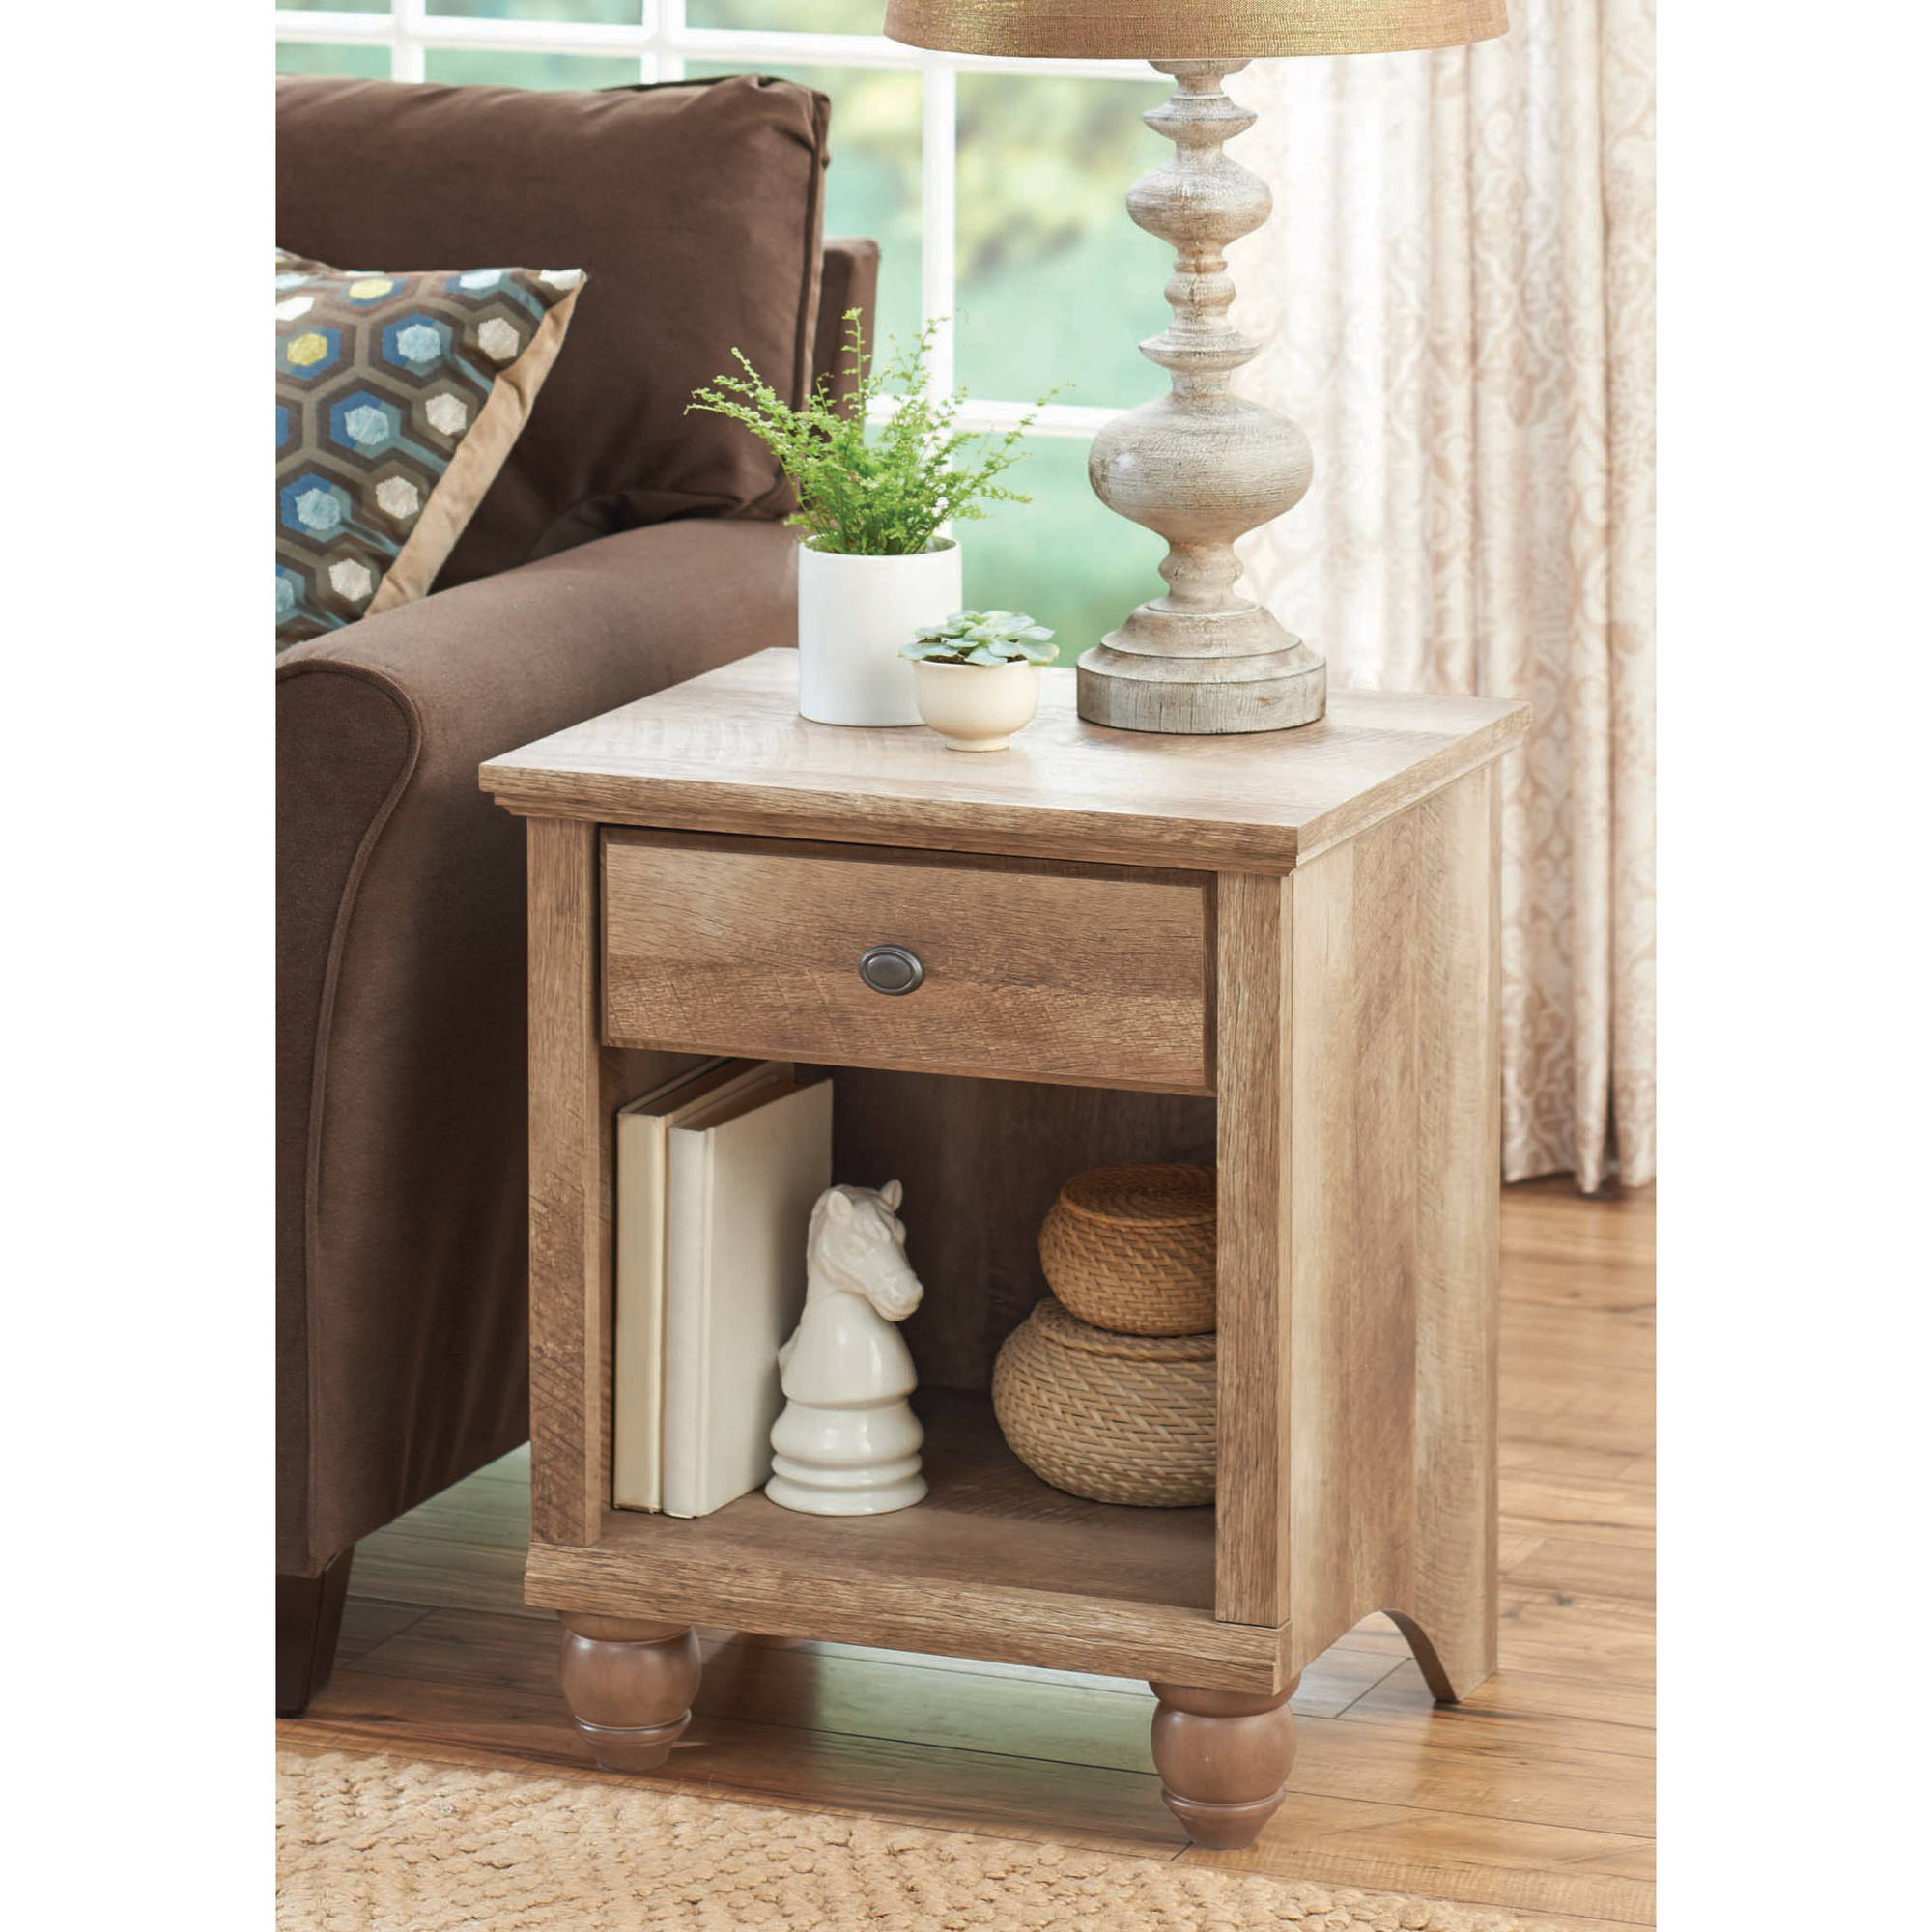 Better Homes and Gardens Crossmill Collection - Walmart.com